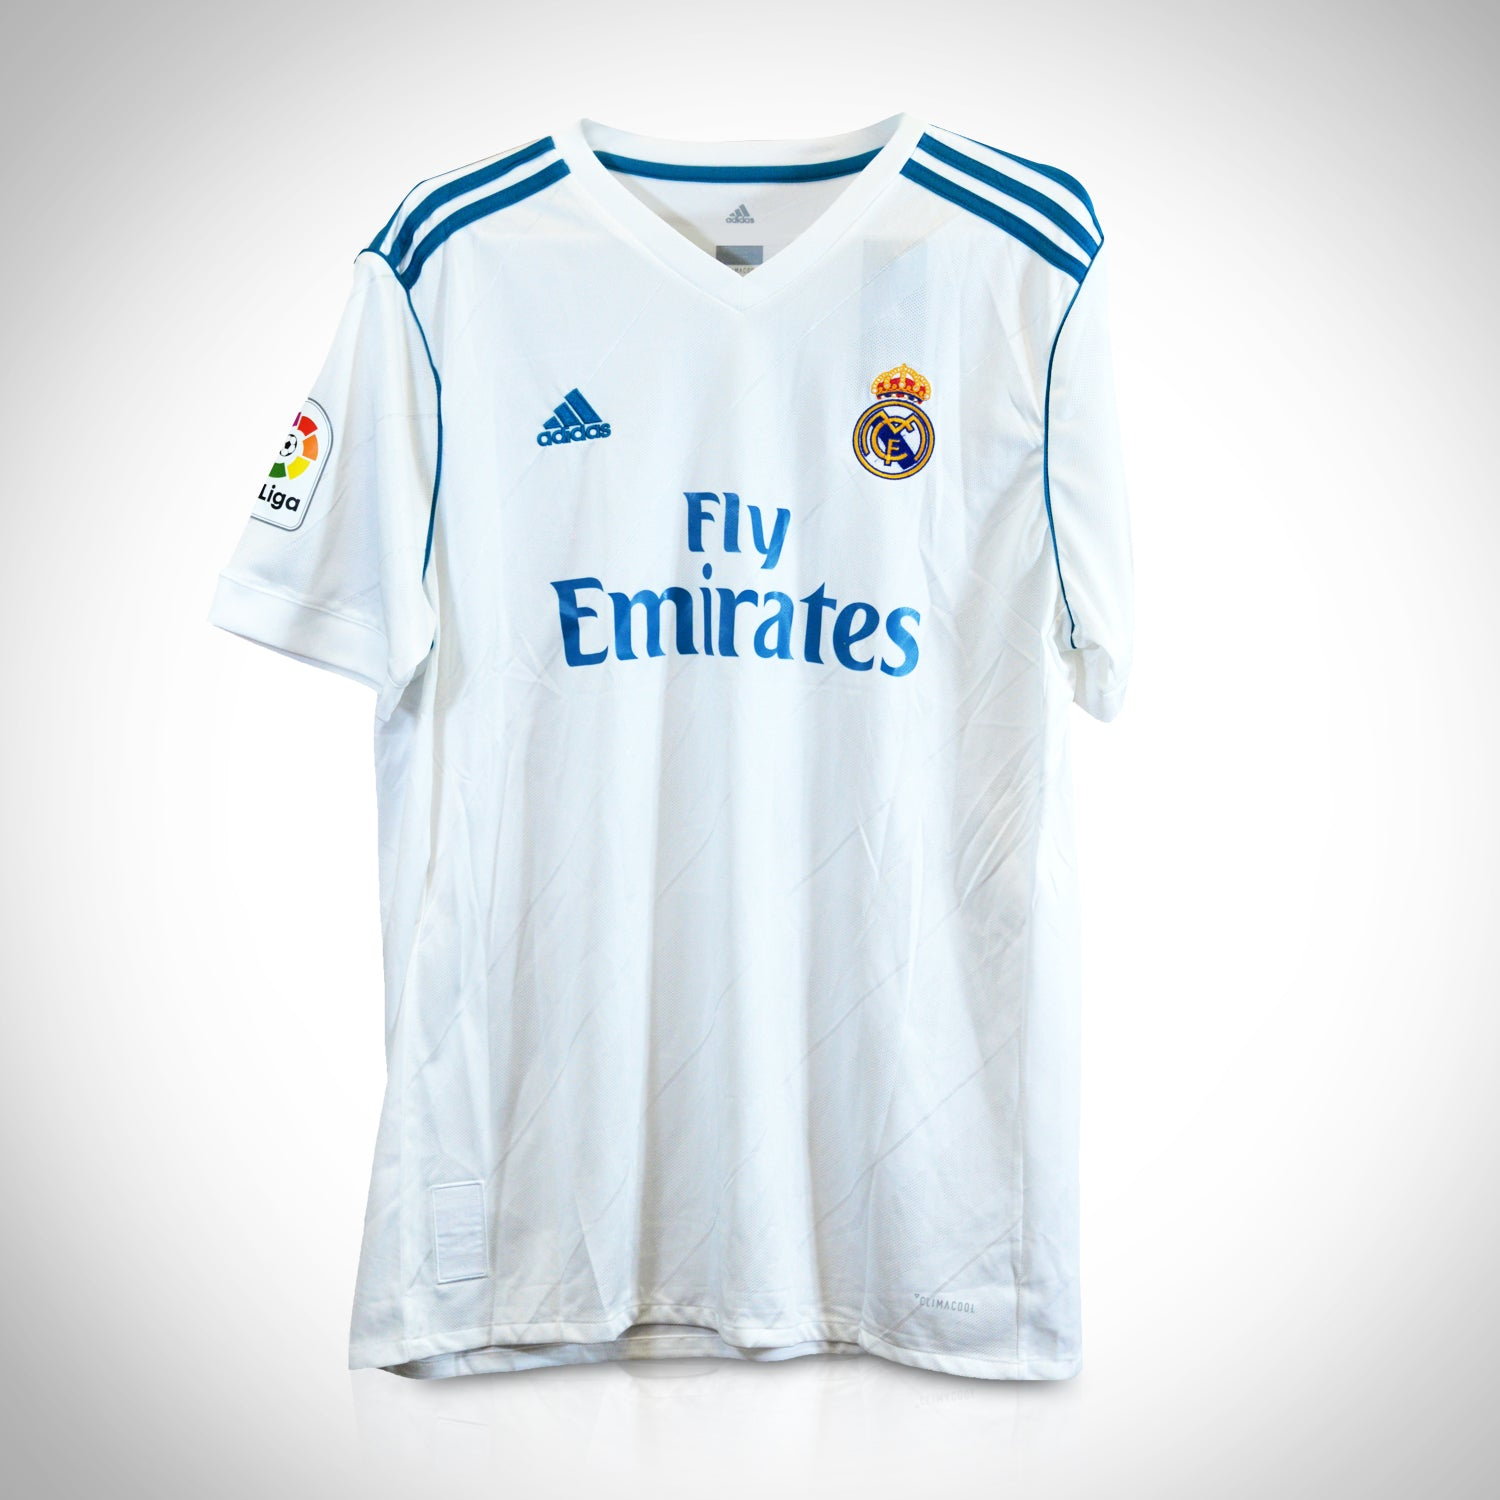 pretty nice 4aed2 4ded5 CRISTIANO RONALDO - REAL MADRID 2017-2018 Handsigned Soccer White Jersey